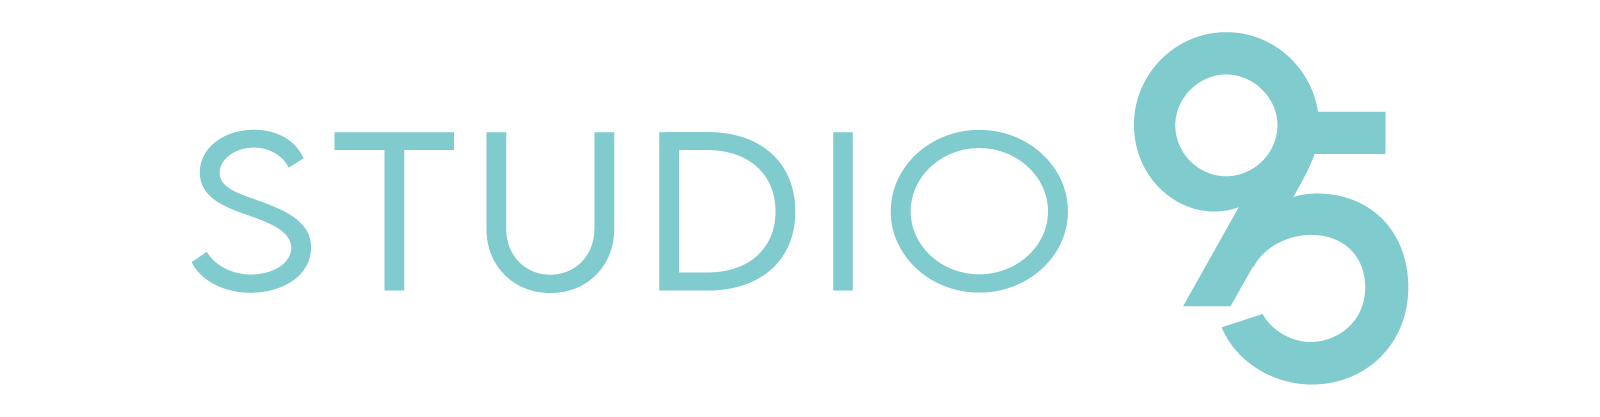 Studio 95 logo 768x200 website RGB